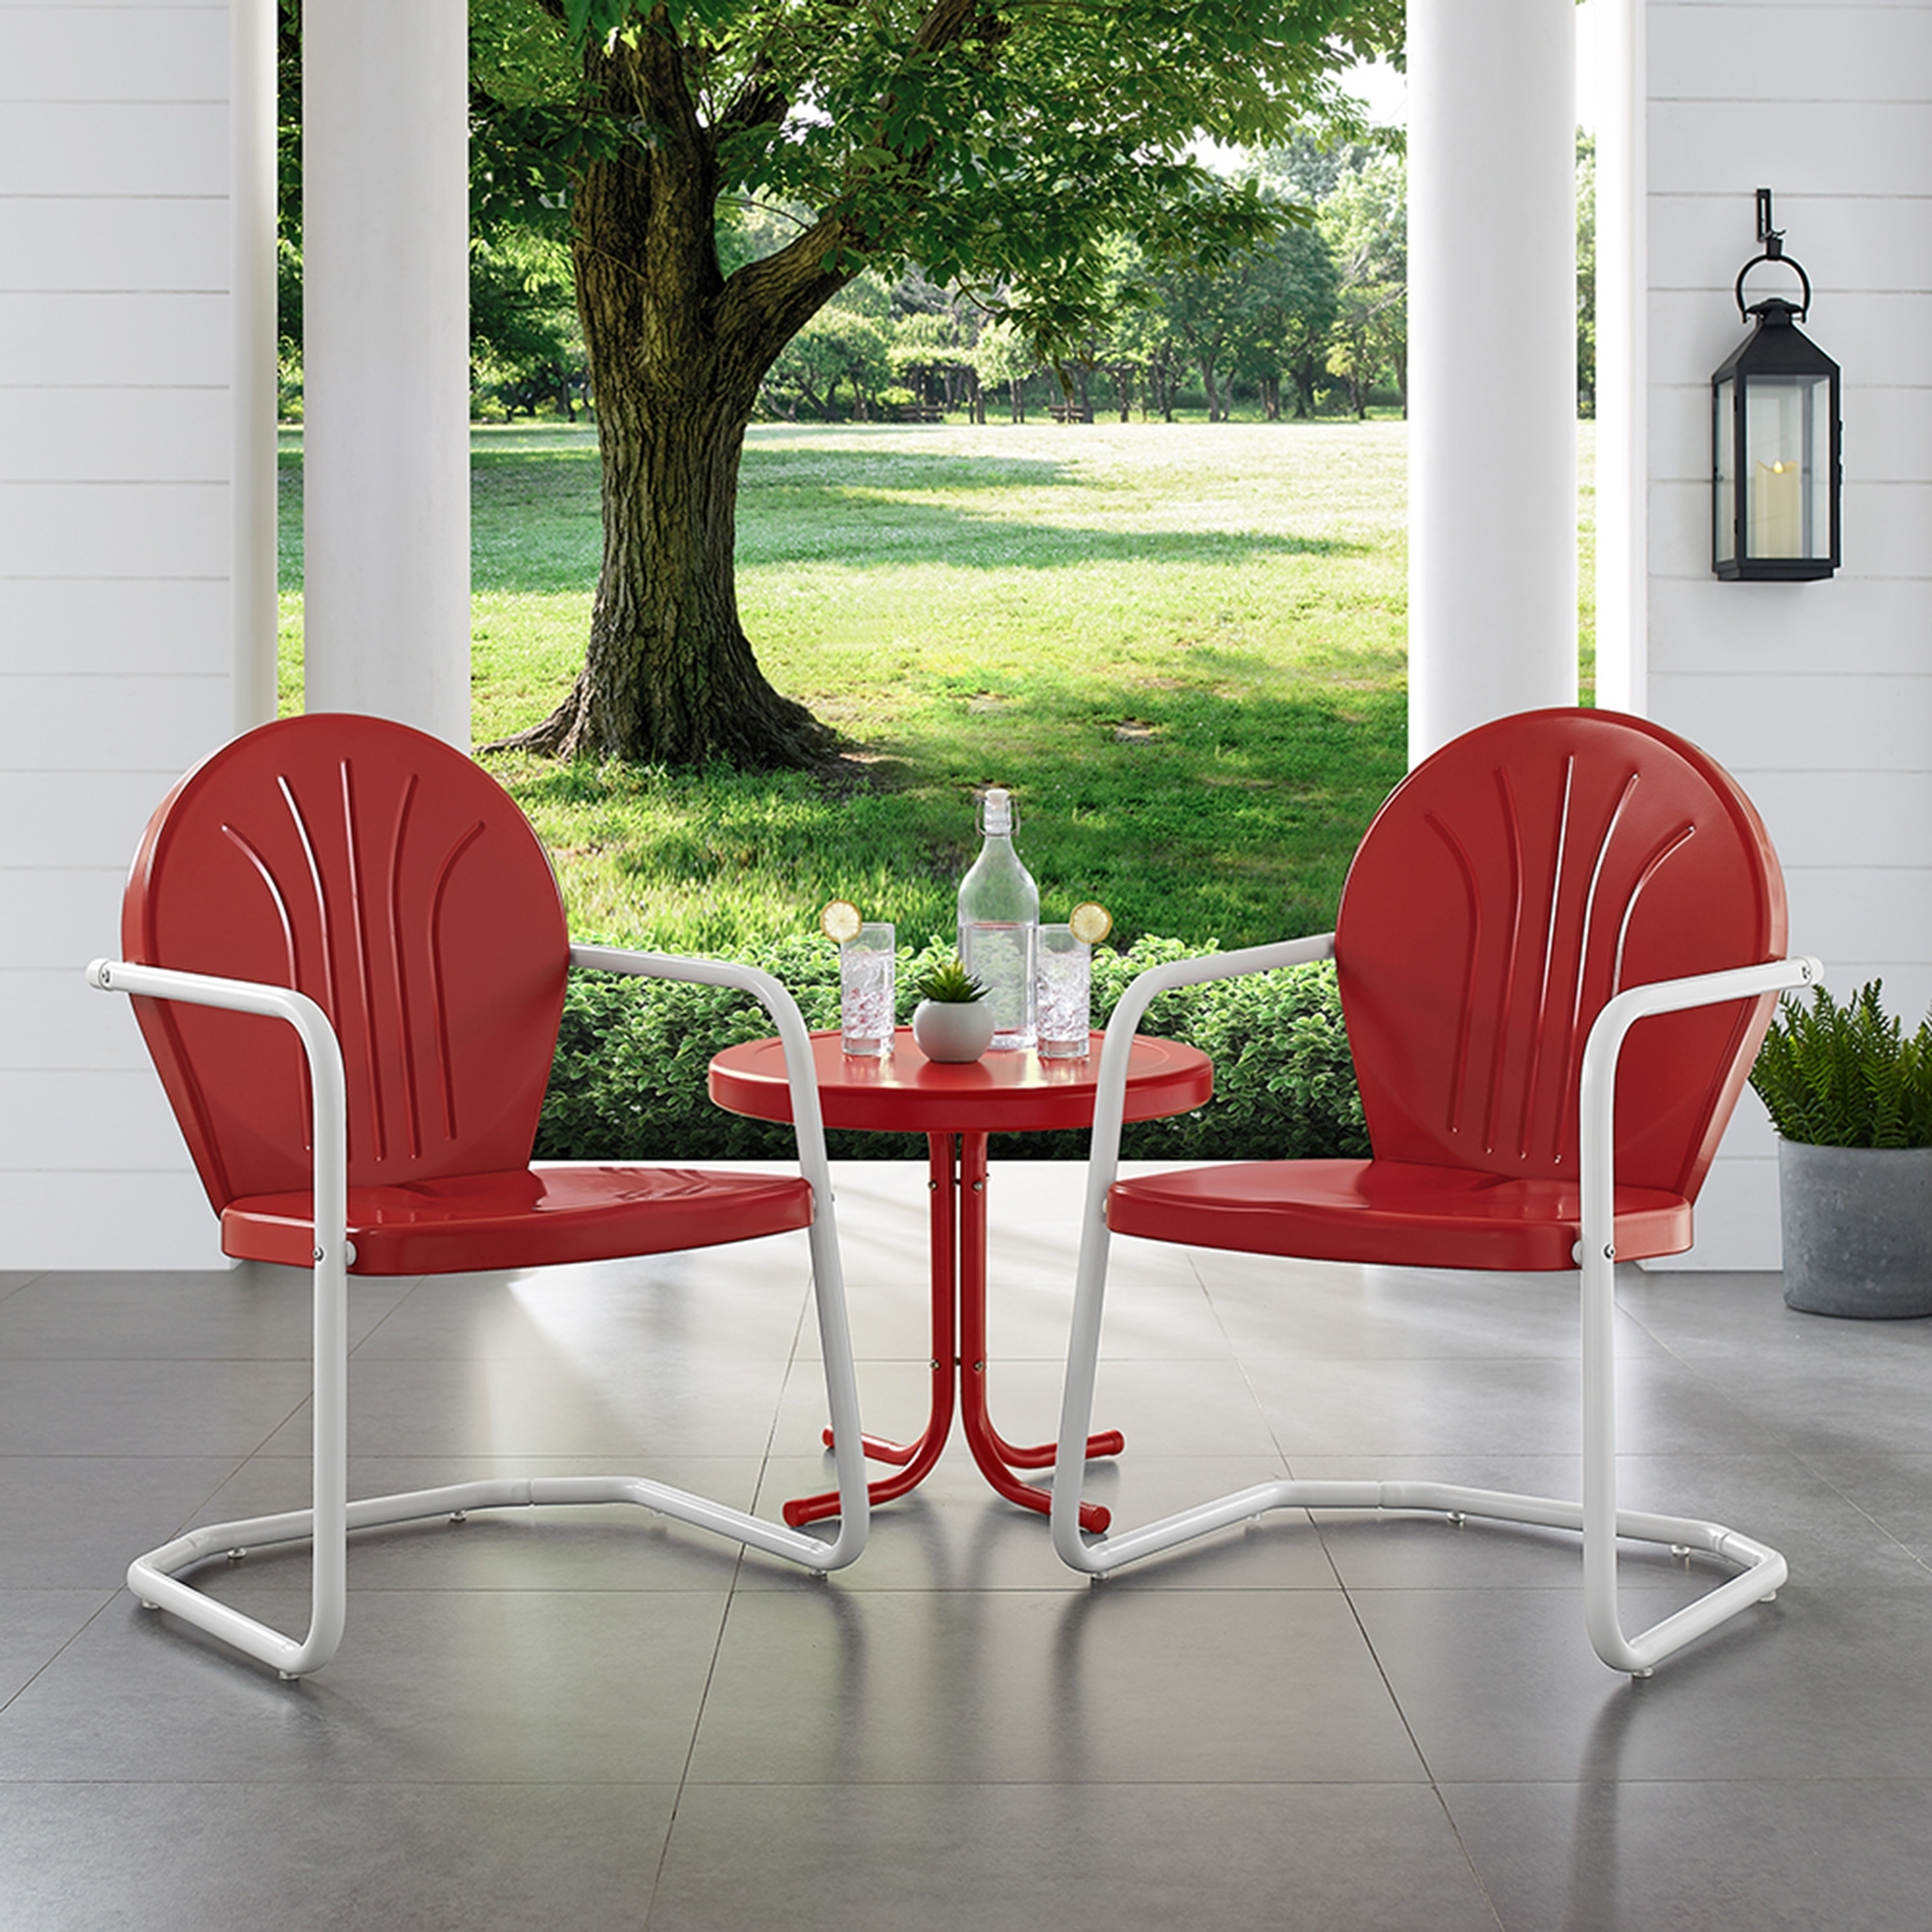 Griffith 3 Piece Metal Outdoor Conversation Seating Set Two Chairs In Red Finish With Side Table White